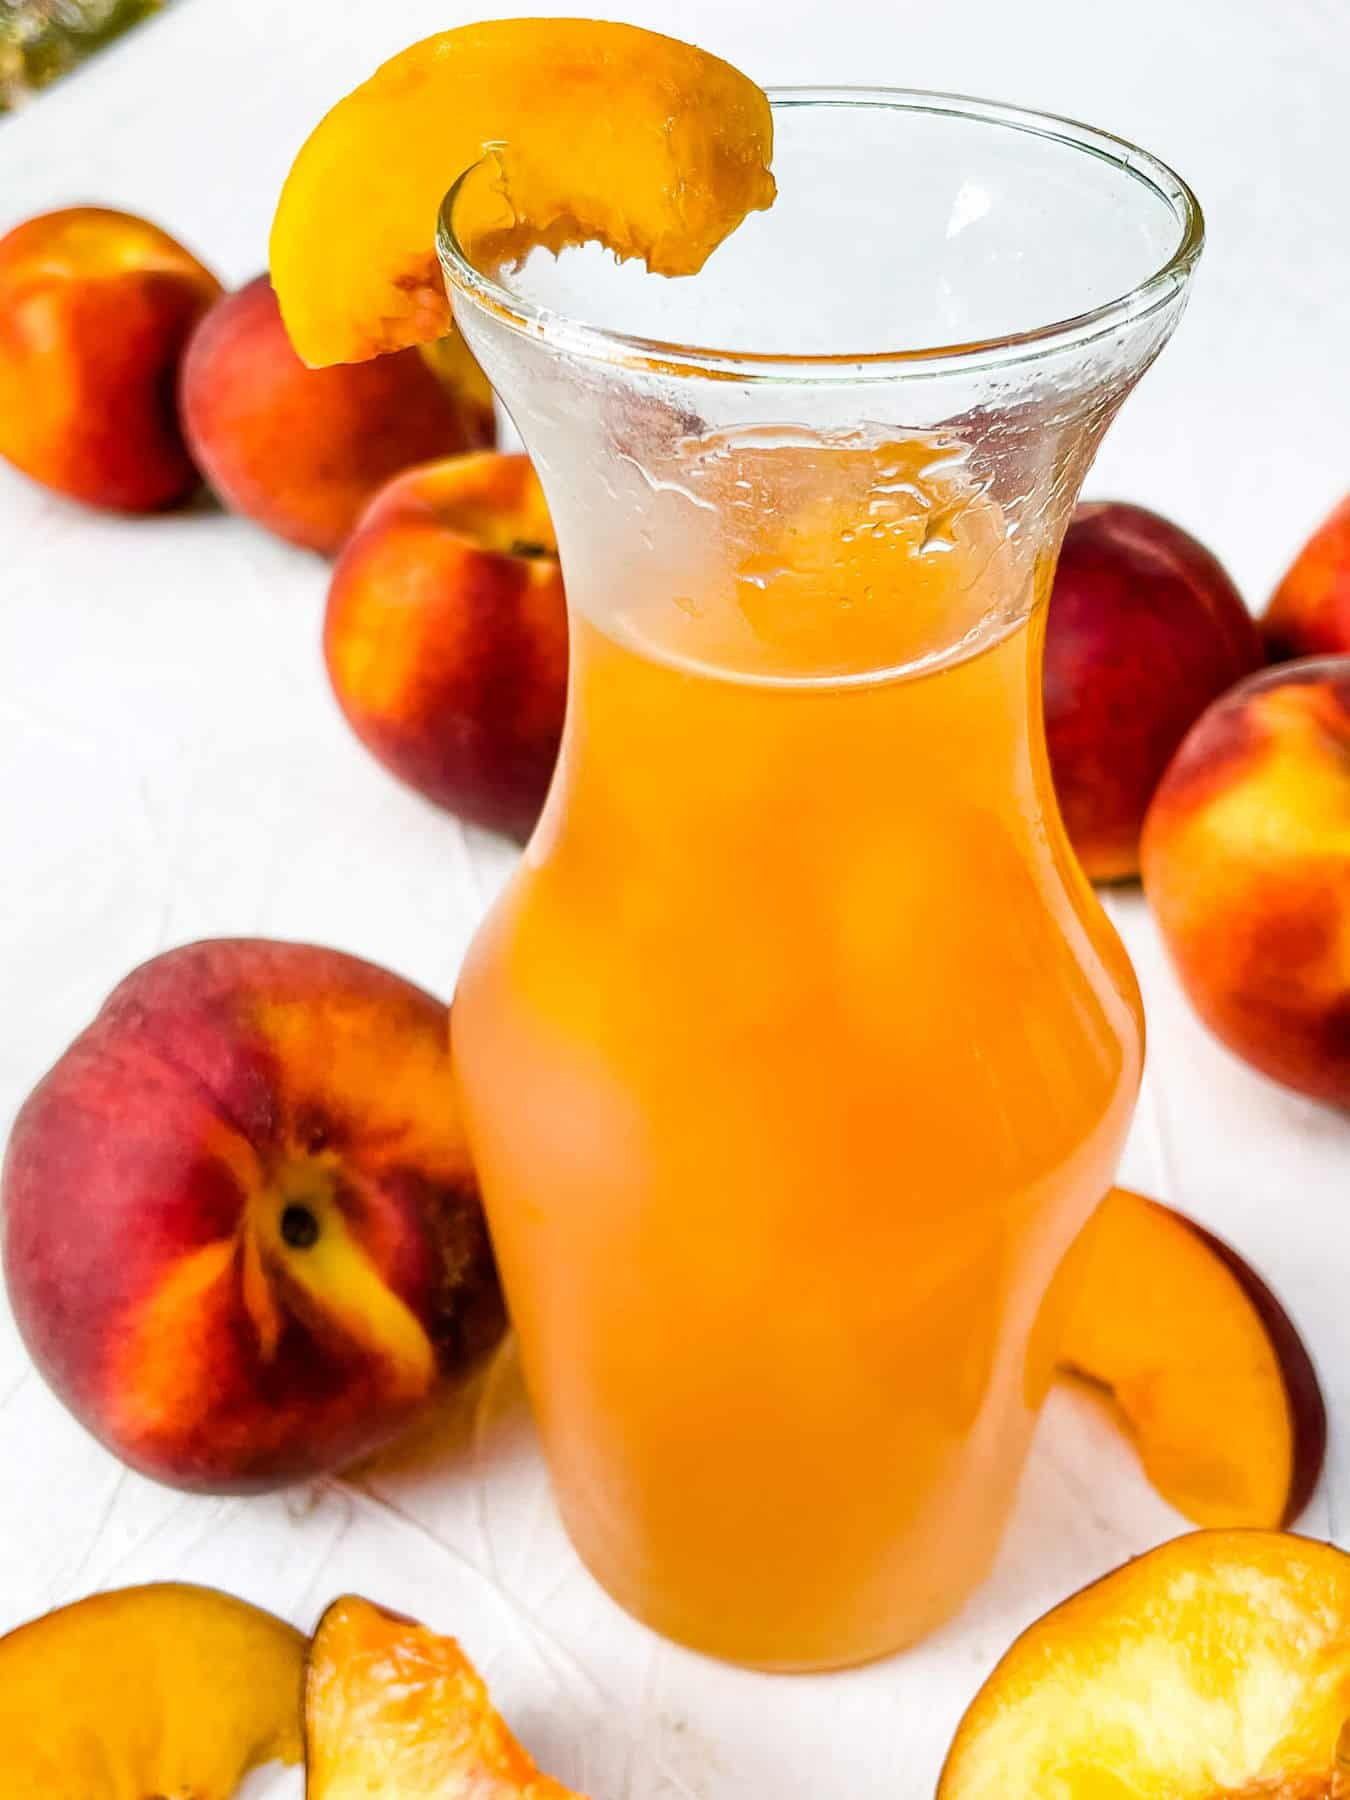 A jar of Peach Syrup with peaches around it